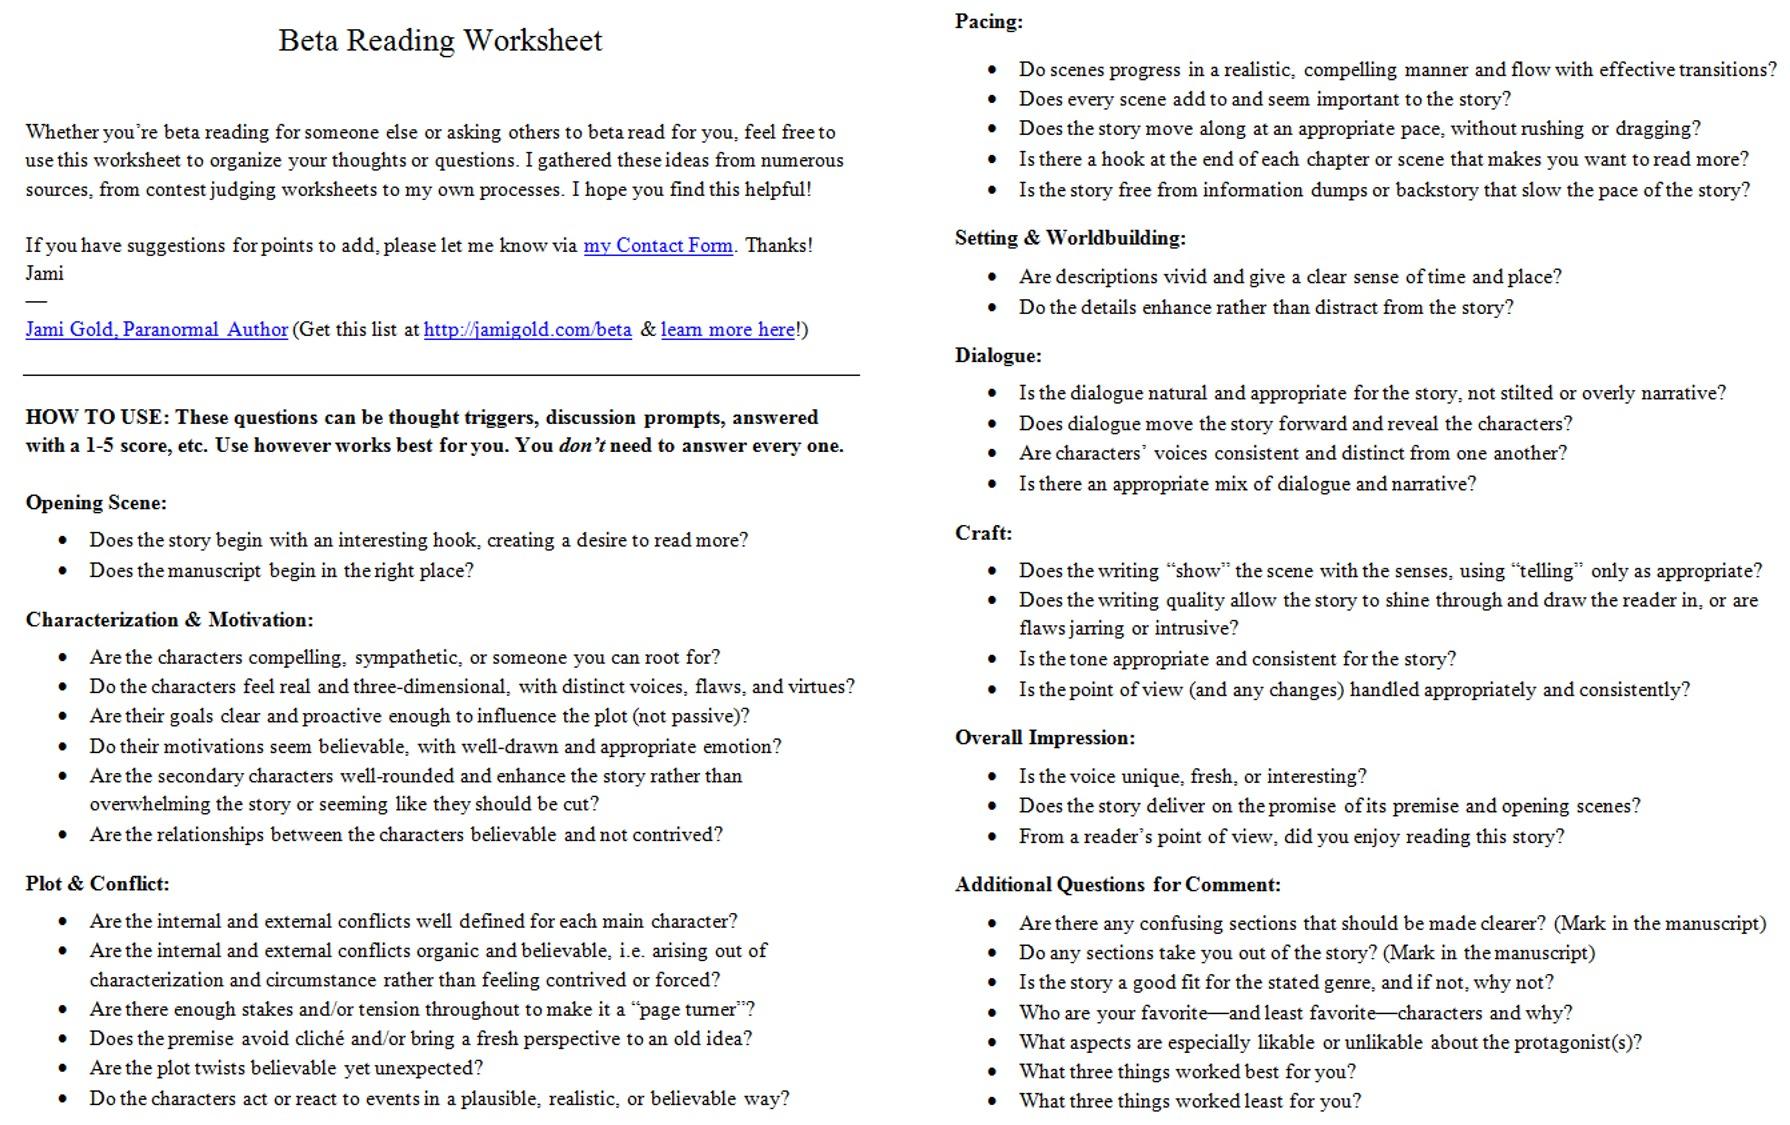 Aldiablosus  Unusual Worksheets For Writers  Jami Gold Paranormal Author With Luxury Screen Shot Of The Twopage Beta Reading Worksheet With Adorable Solid Liquids And Gases Worksheets Also Basic Graphing Worksheets In Addition Free R Controlled Vowel Worksheets And Letter G Preschool Worksheet As Well As How To Add Worksheet In Excel Additionally Polygon Perimeter Worksheet From Jamigoldcom With Aldiablosus  Luxury Worksheets For Writers  Jami Gold Paranormal Author With Adorable Screen Shot Of The Twopage Beta Reading Worksheet And Unusual Solid Liquids And Gases Worksheets Also Basic Graphing Worksheets In Addition Free R Controlled Vowel Worksheets From Jamigoldcom